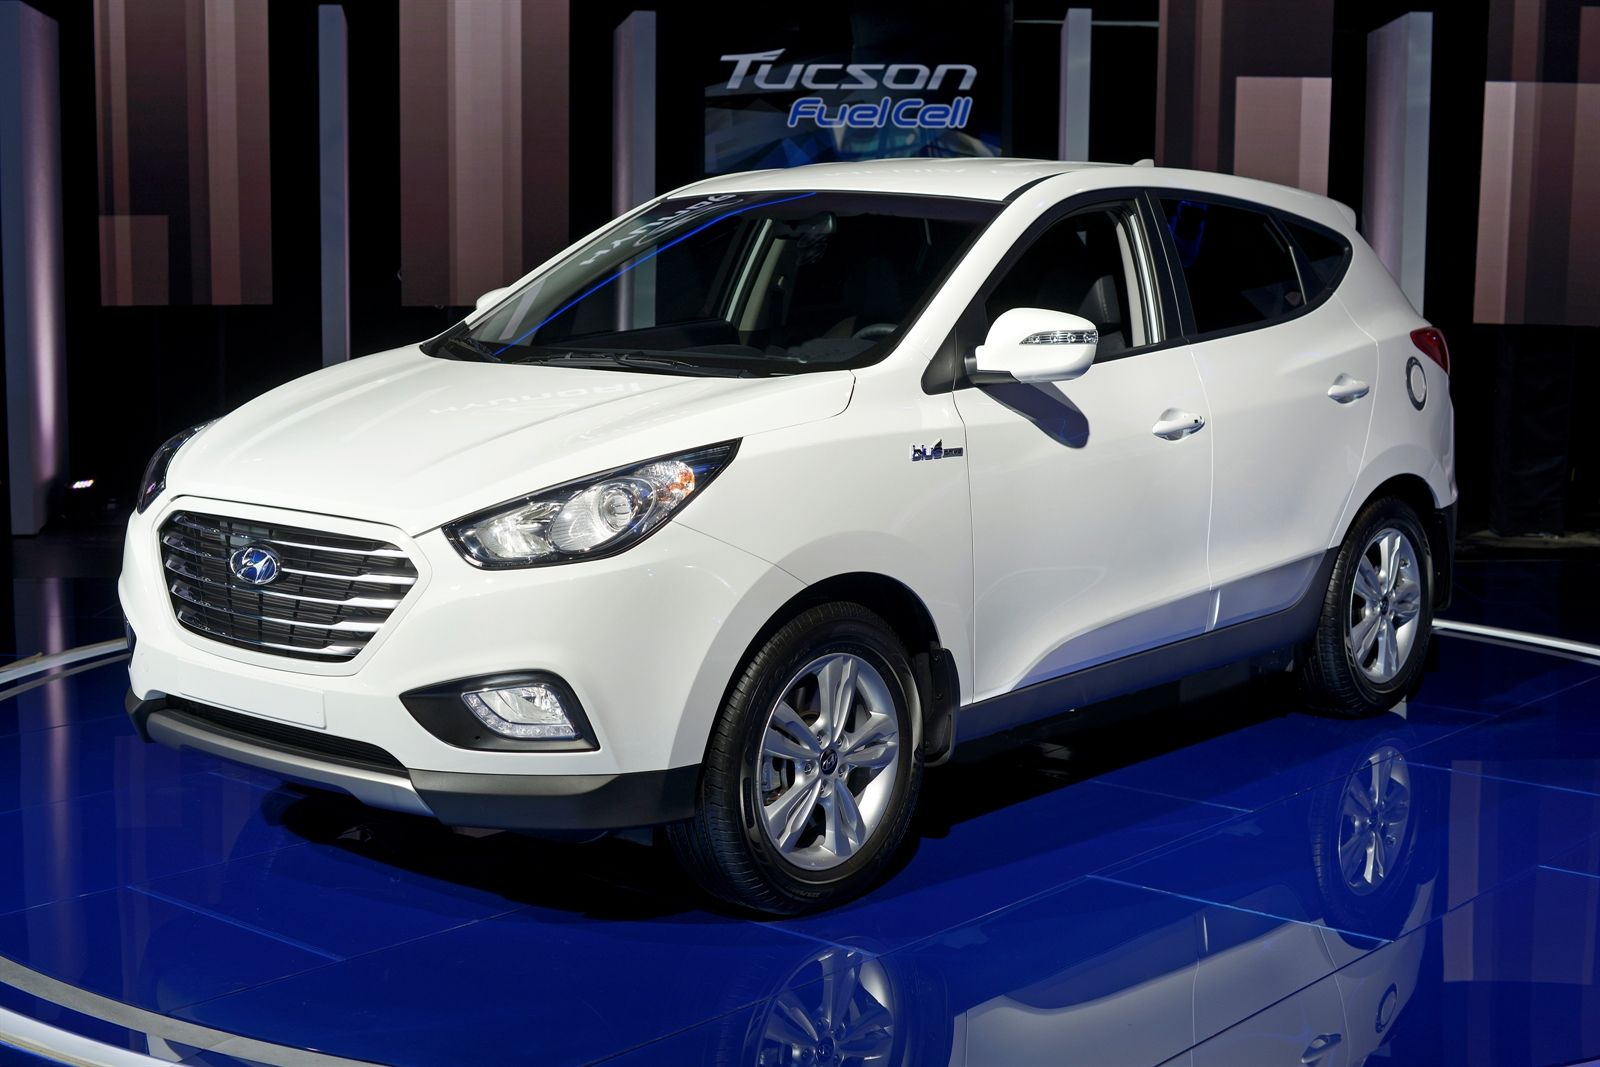 new car release dates 2013New 2015 Hyundai Tuscon Fuel Cell Preview 2013 Los Angeles Auto